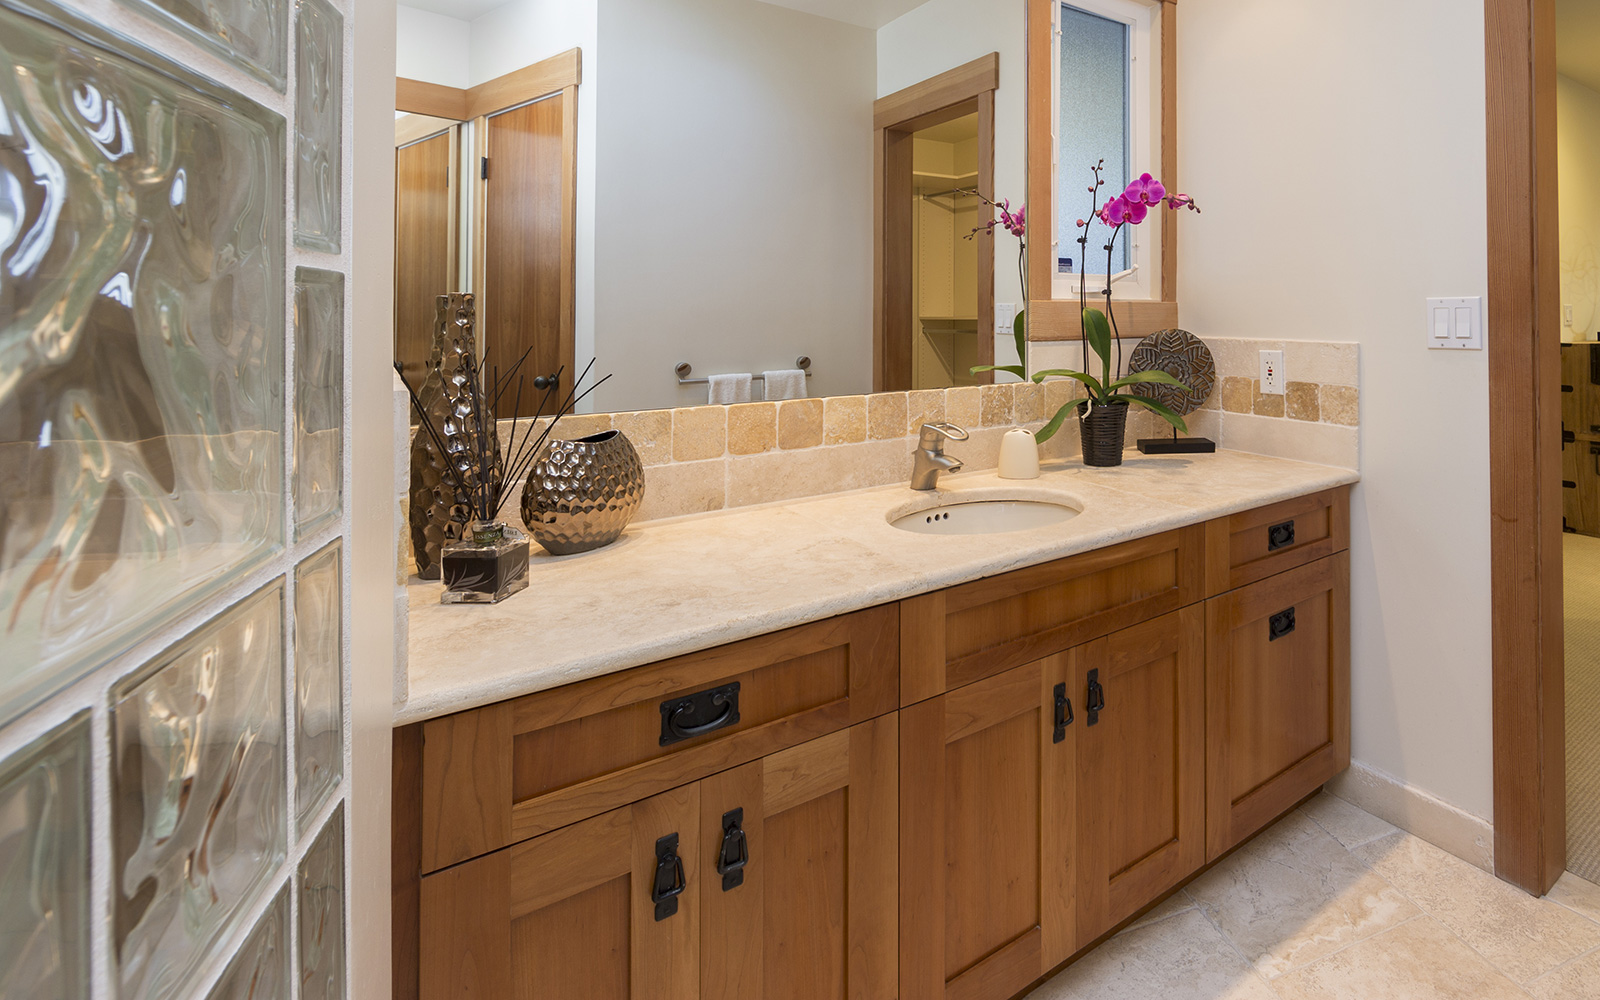 Calgary custom kitchen cabinets ltd vanities for Kitchen cabinets calgary